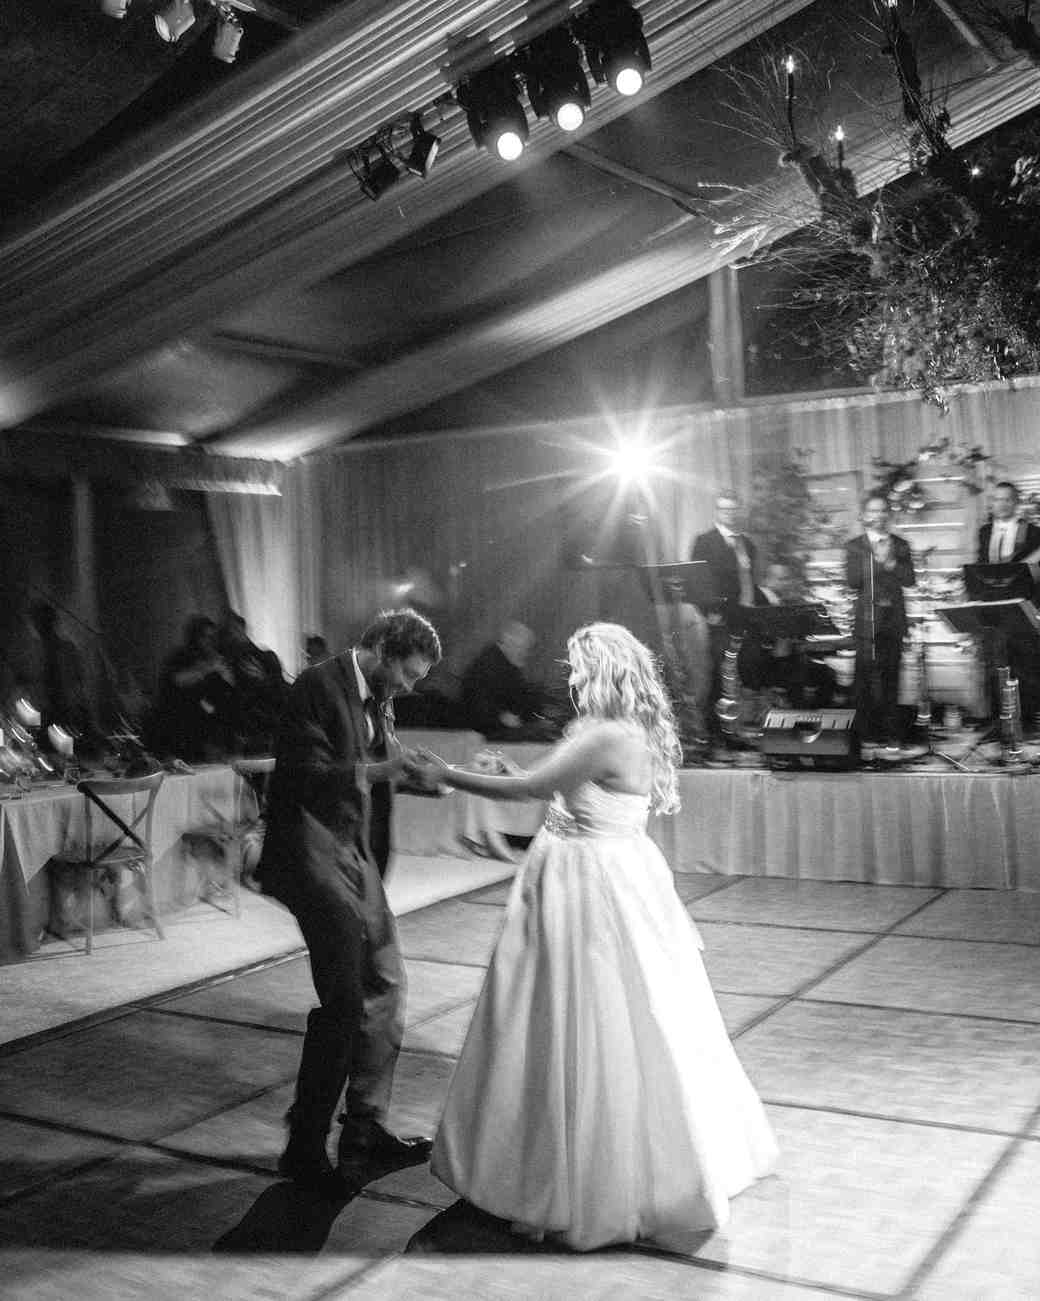 lizzy-bucky-wedding-dance-564-s111857-0315.jpg